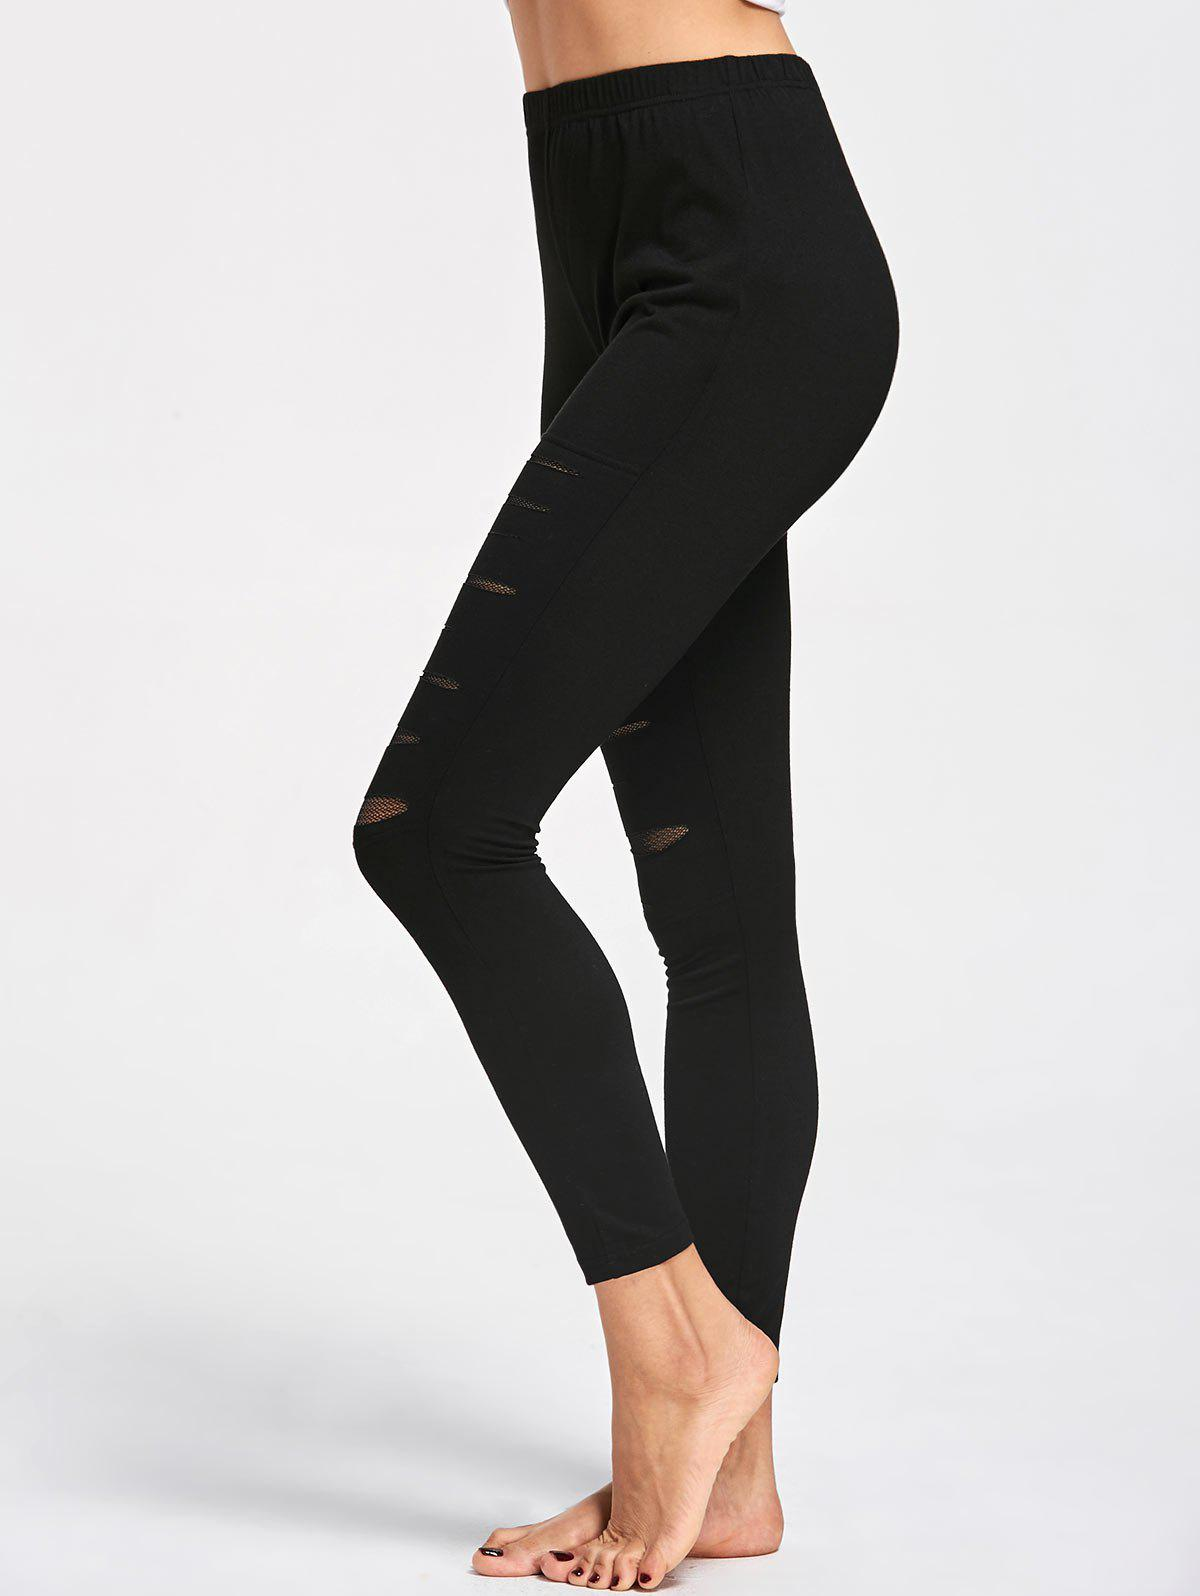 Ripped High Waist LeggingsWOMEN<br><br>Size: 2XL; Color: BLACK; Style: Casual; Material: Polyester,Spandex; Waist Type: High; Pattern Type: Solid; Weight: 0.2300kg; Package Contents: 1 x Leggings;